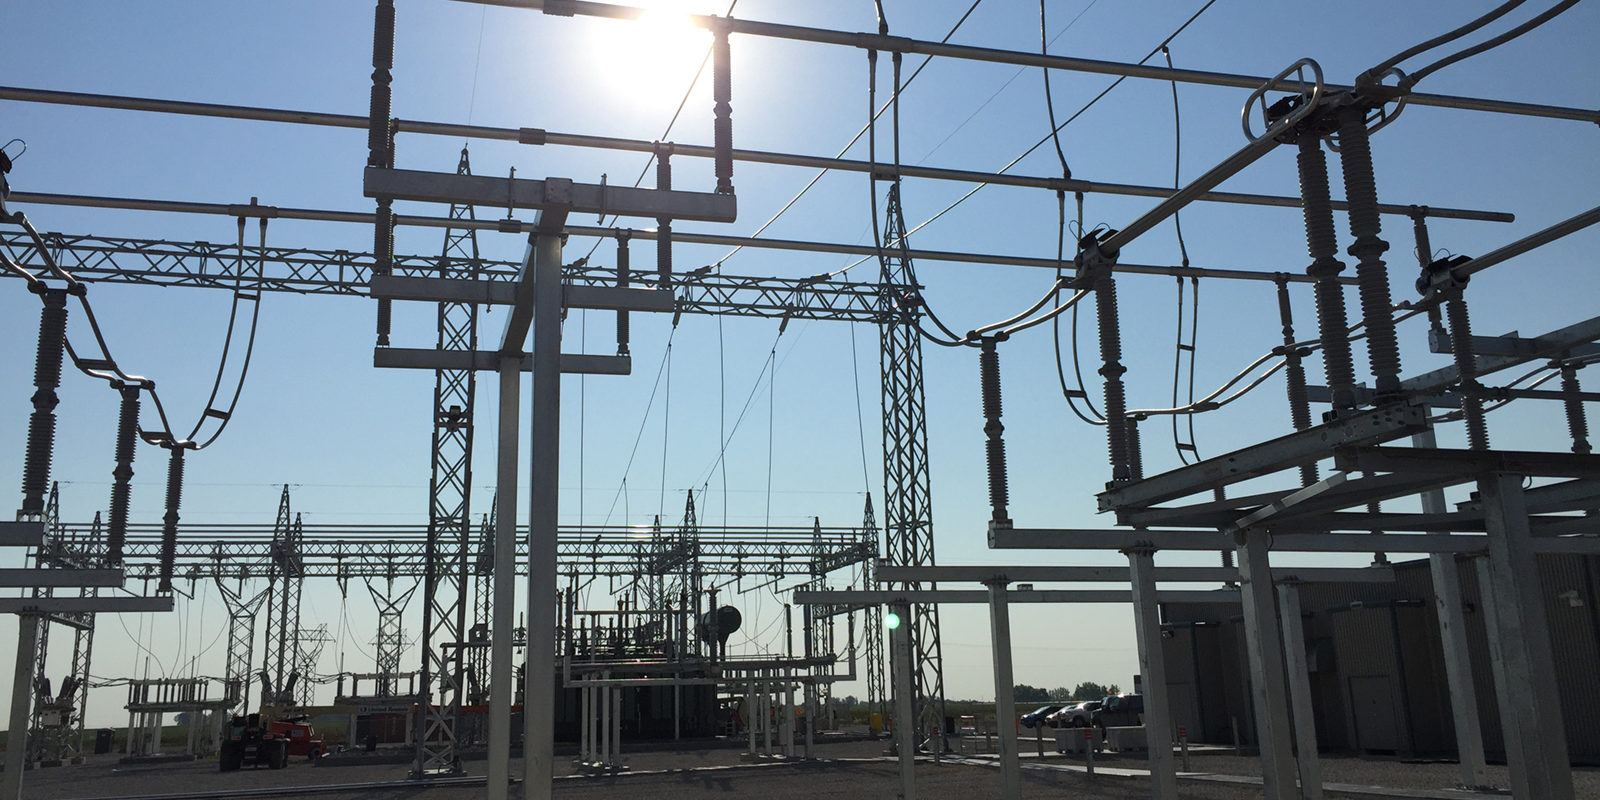 Electricity facilities launched in Iran's Bushehr and Fars provinces